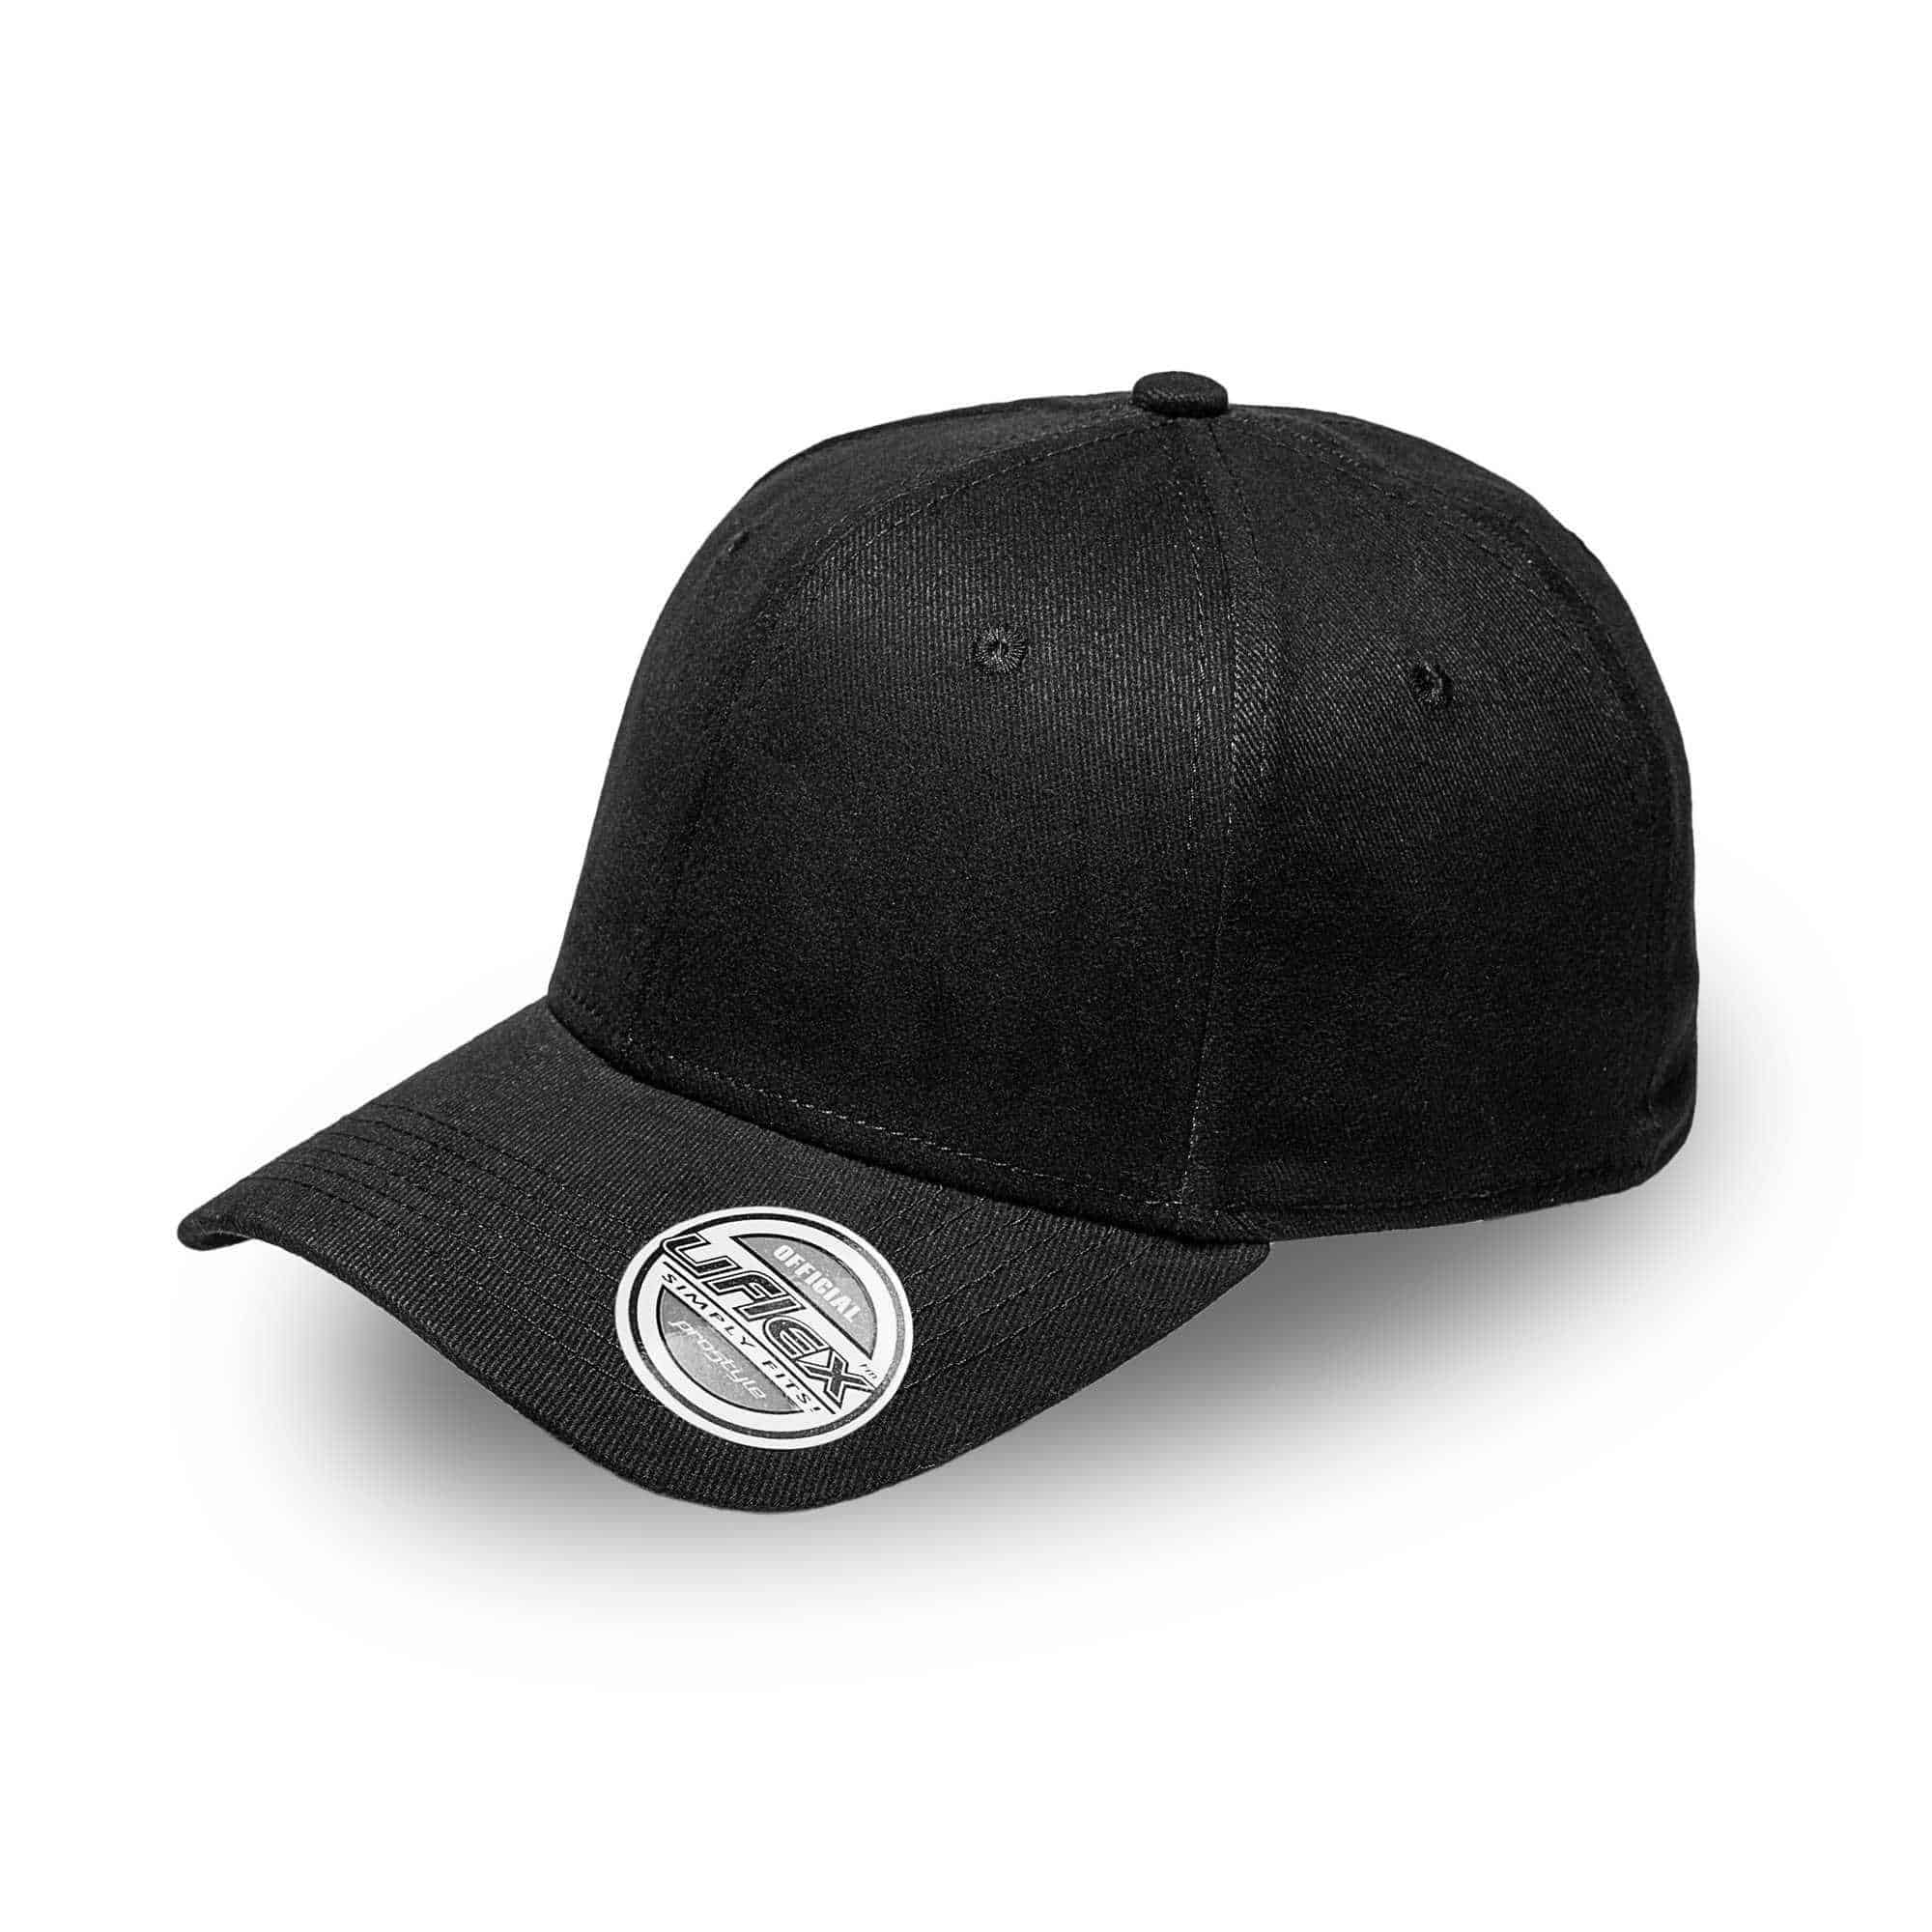 Pro Style Cap Headwear and Accessories